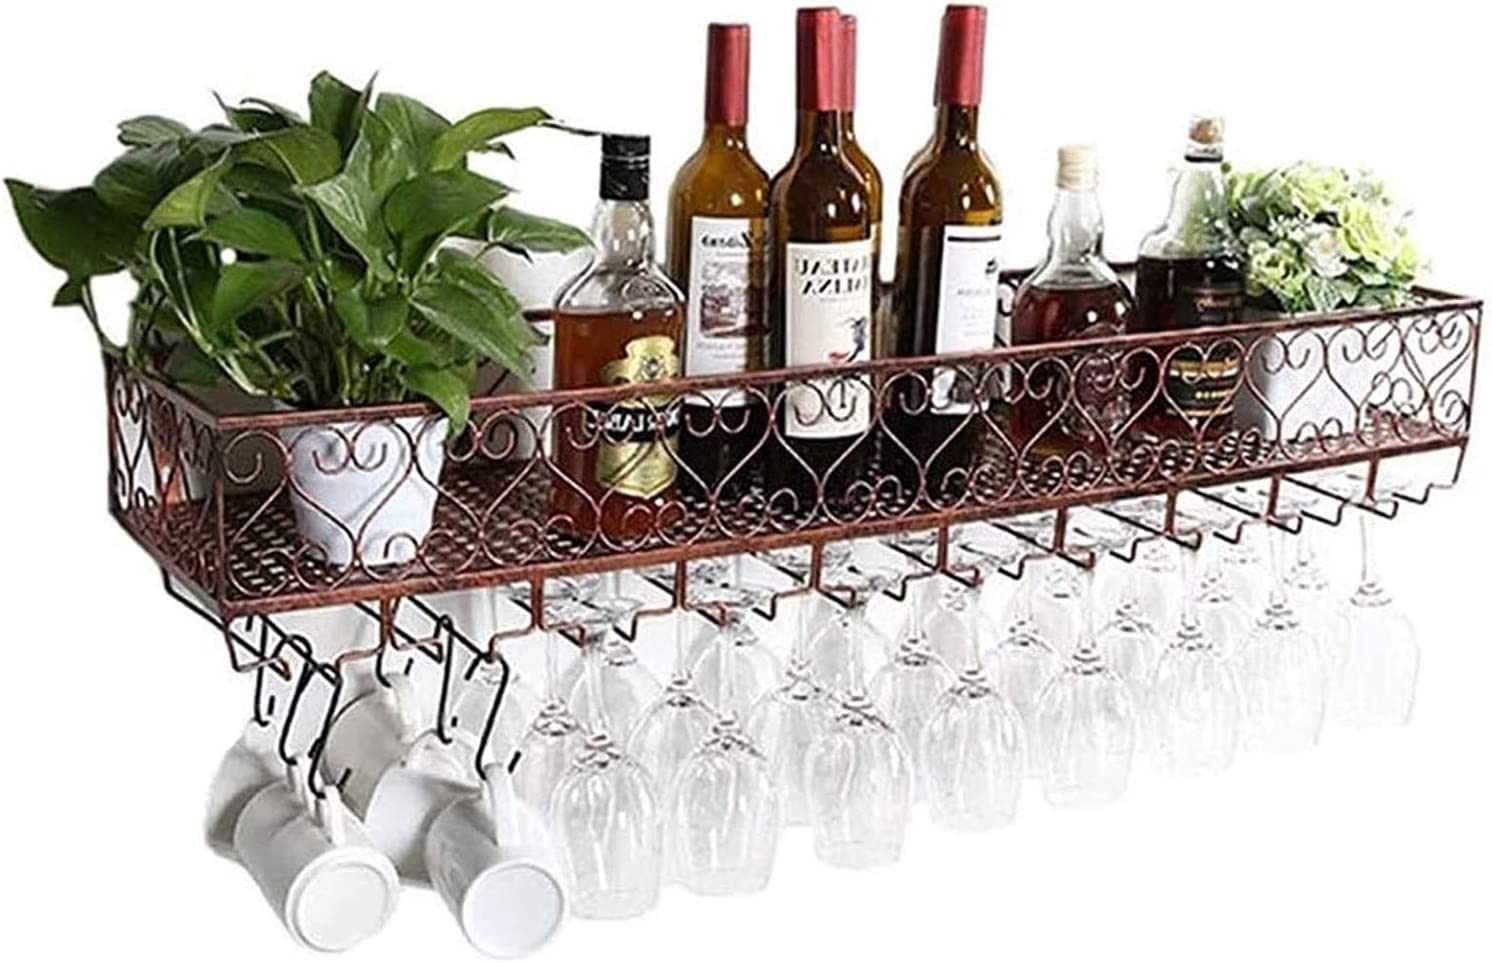 LXYYY Wine Spasm price Rack Ceiling Hanging Holder Direct stock discount Rac Bottle